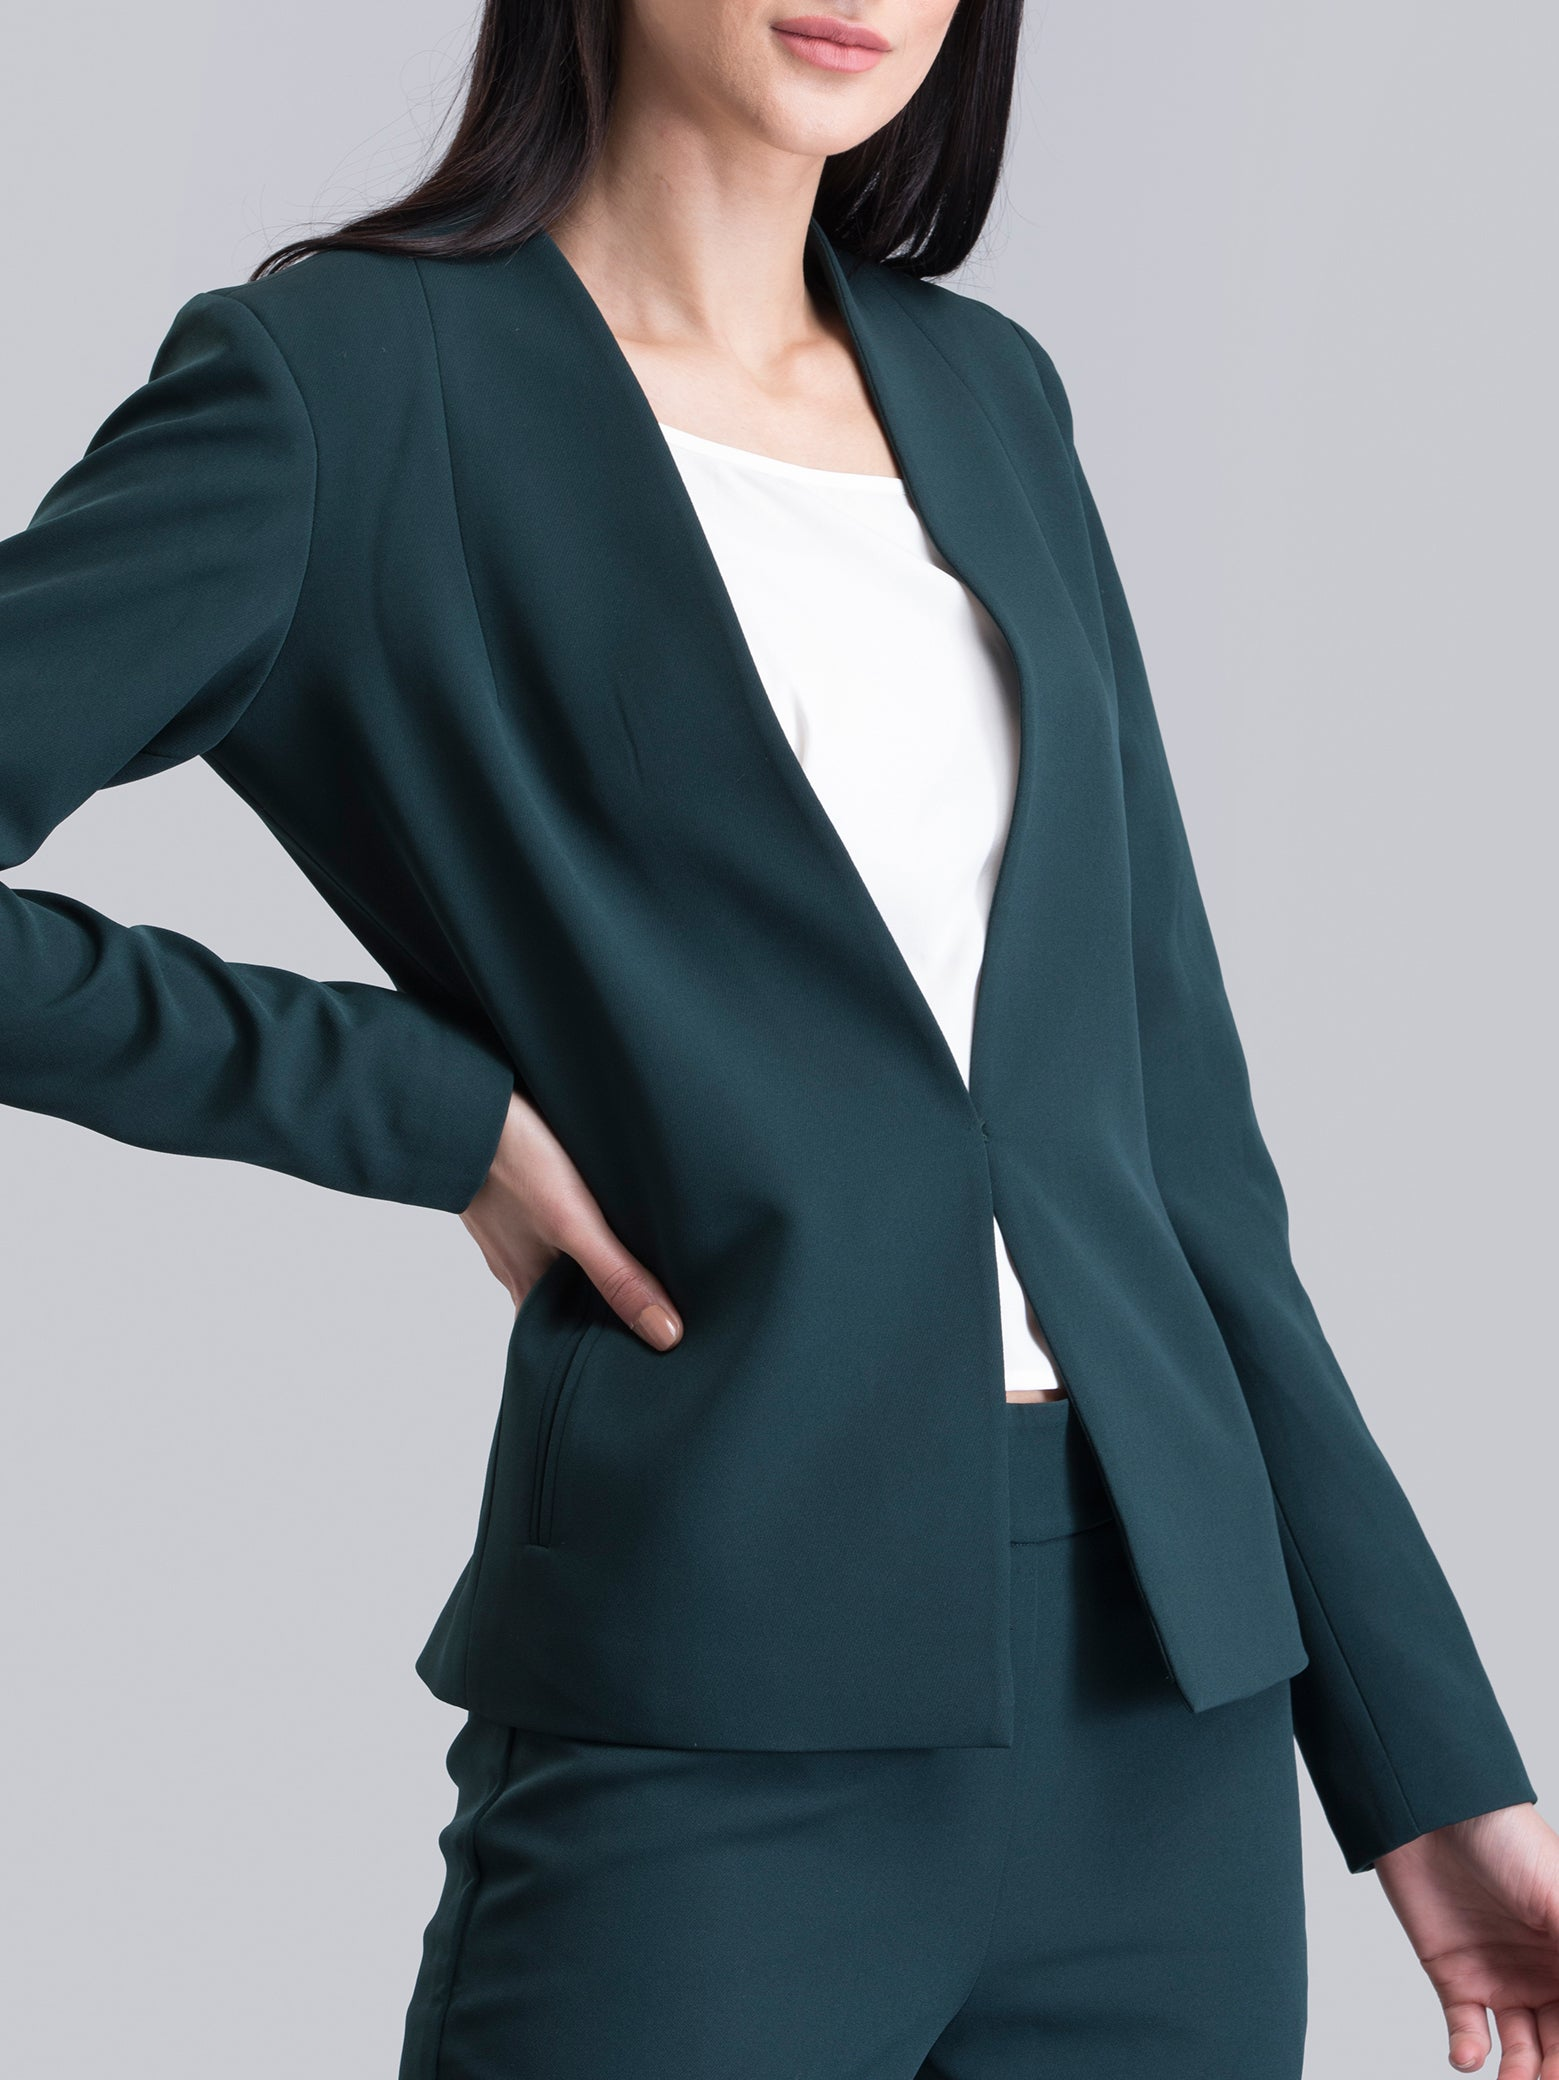 Stylish Hook Closure Jacket - Green